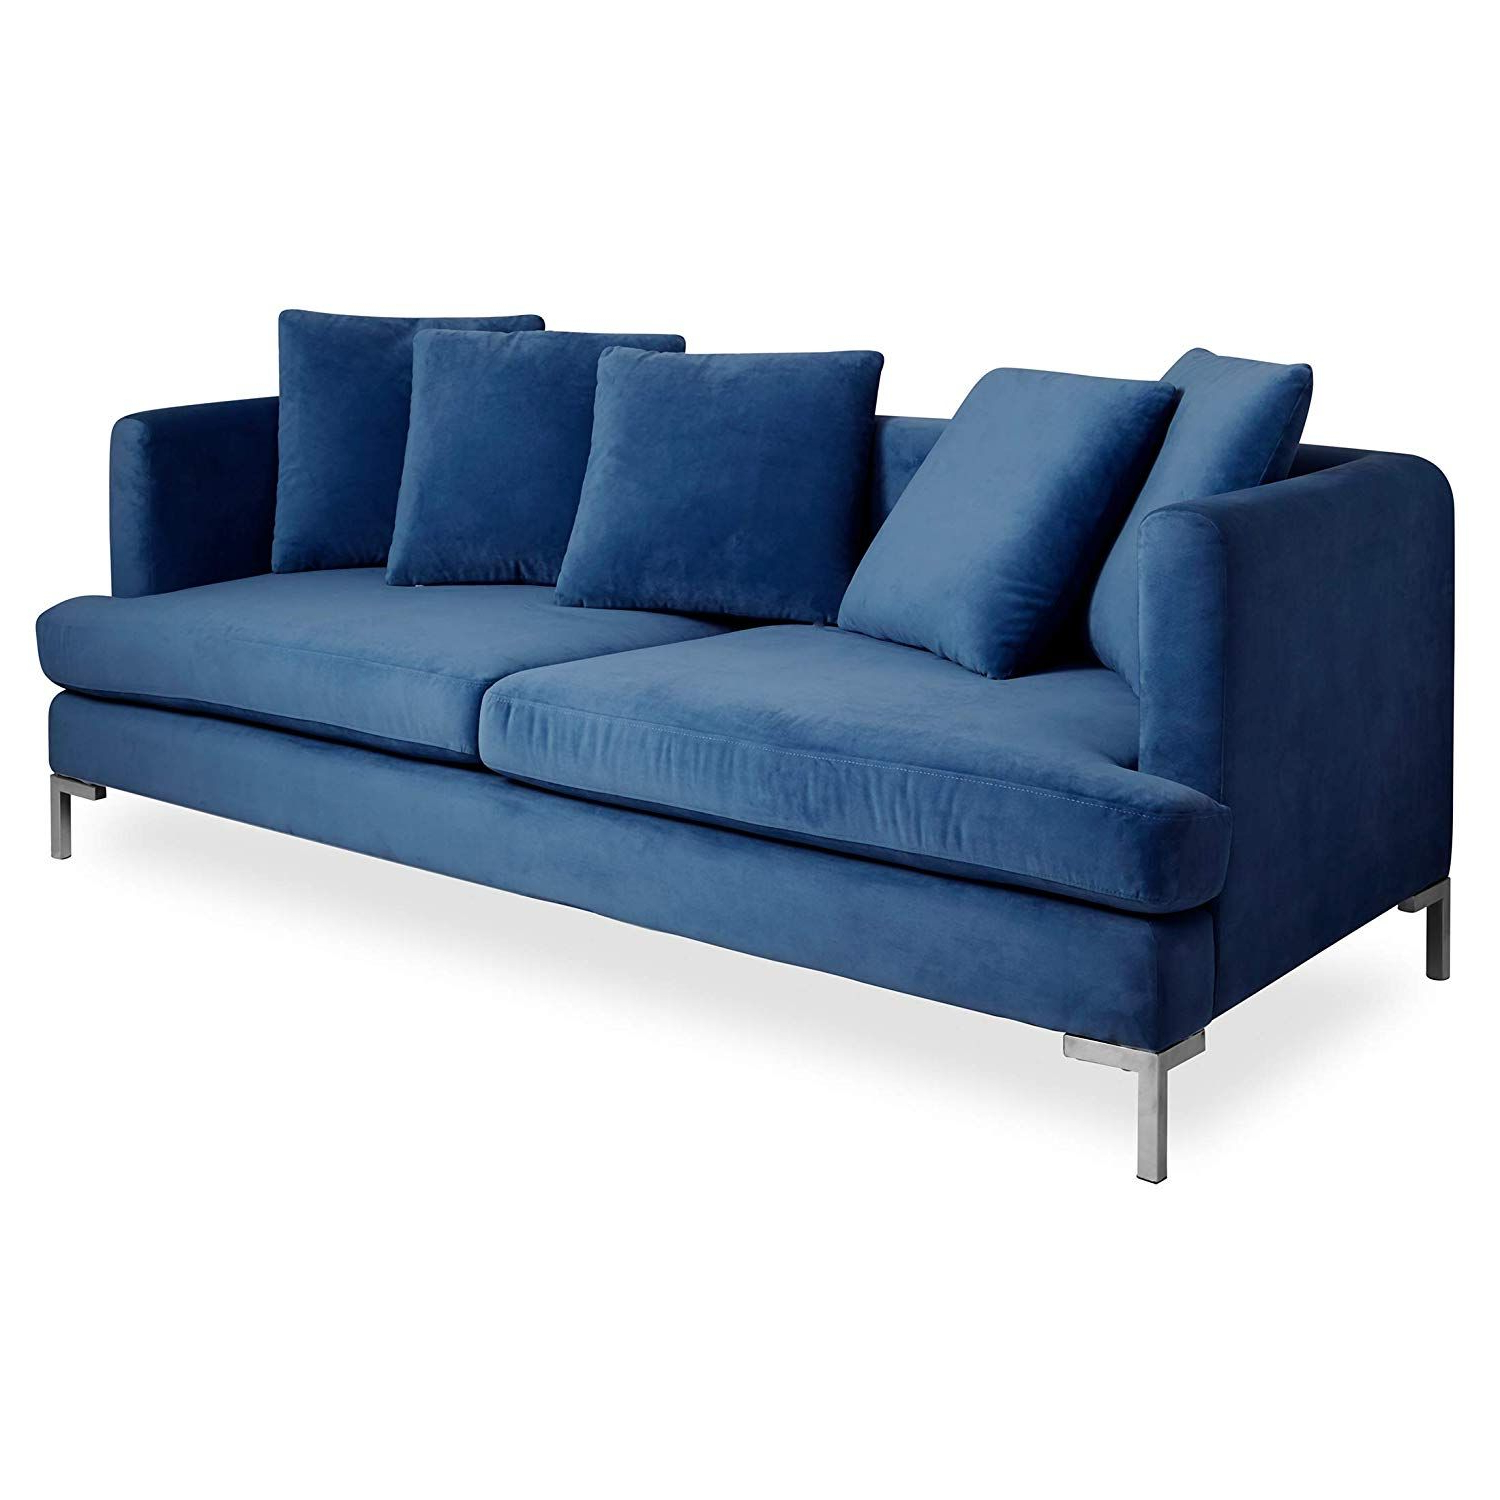 Jonathan Adler Now House Line Black Friday Deals 2018 Within Famous Alder Grande Ii Sofa Chairs (Gallery 10 of 20)